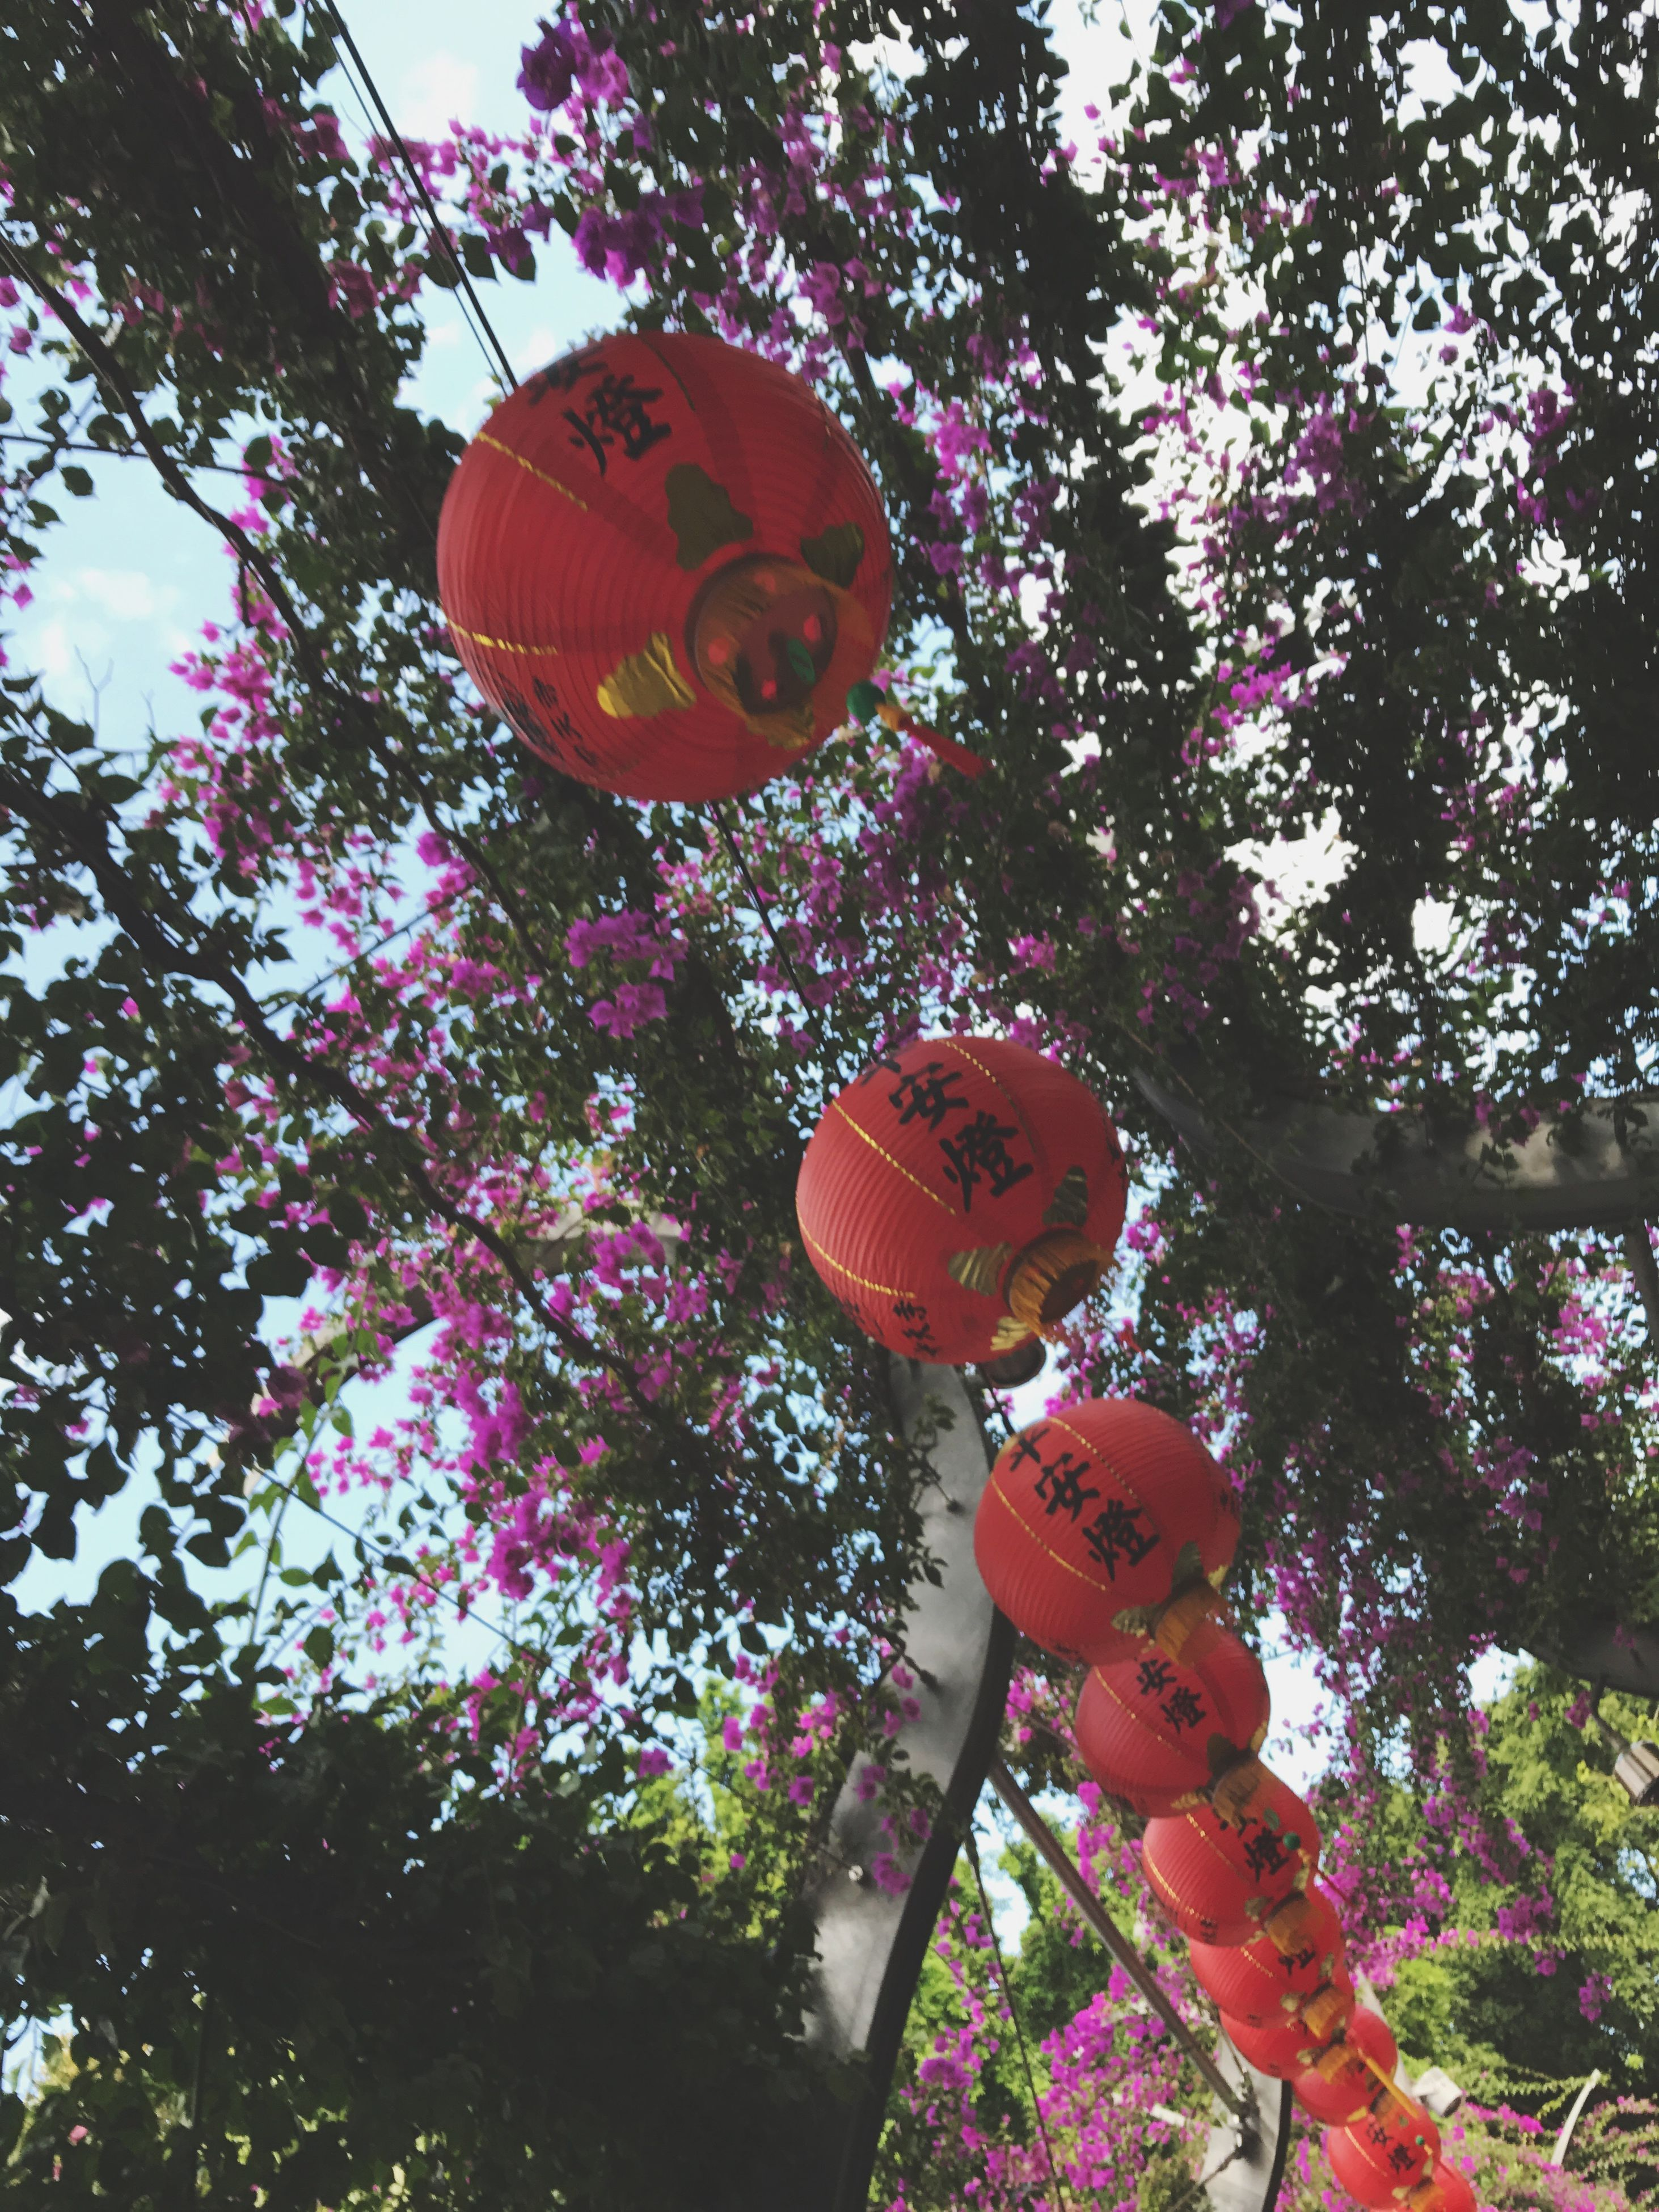 low angle view, tree, no people, hanging, outdoors, sky, ball, day